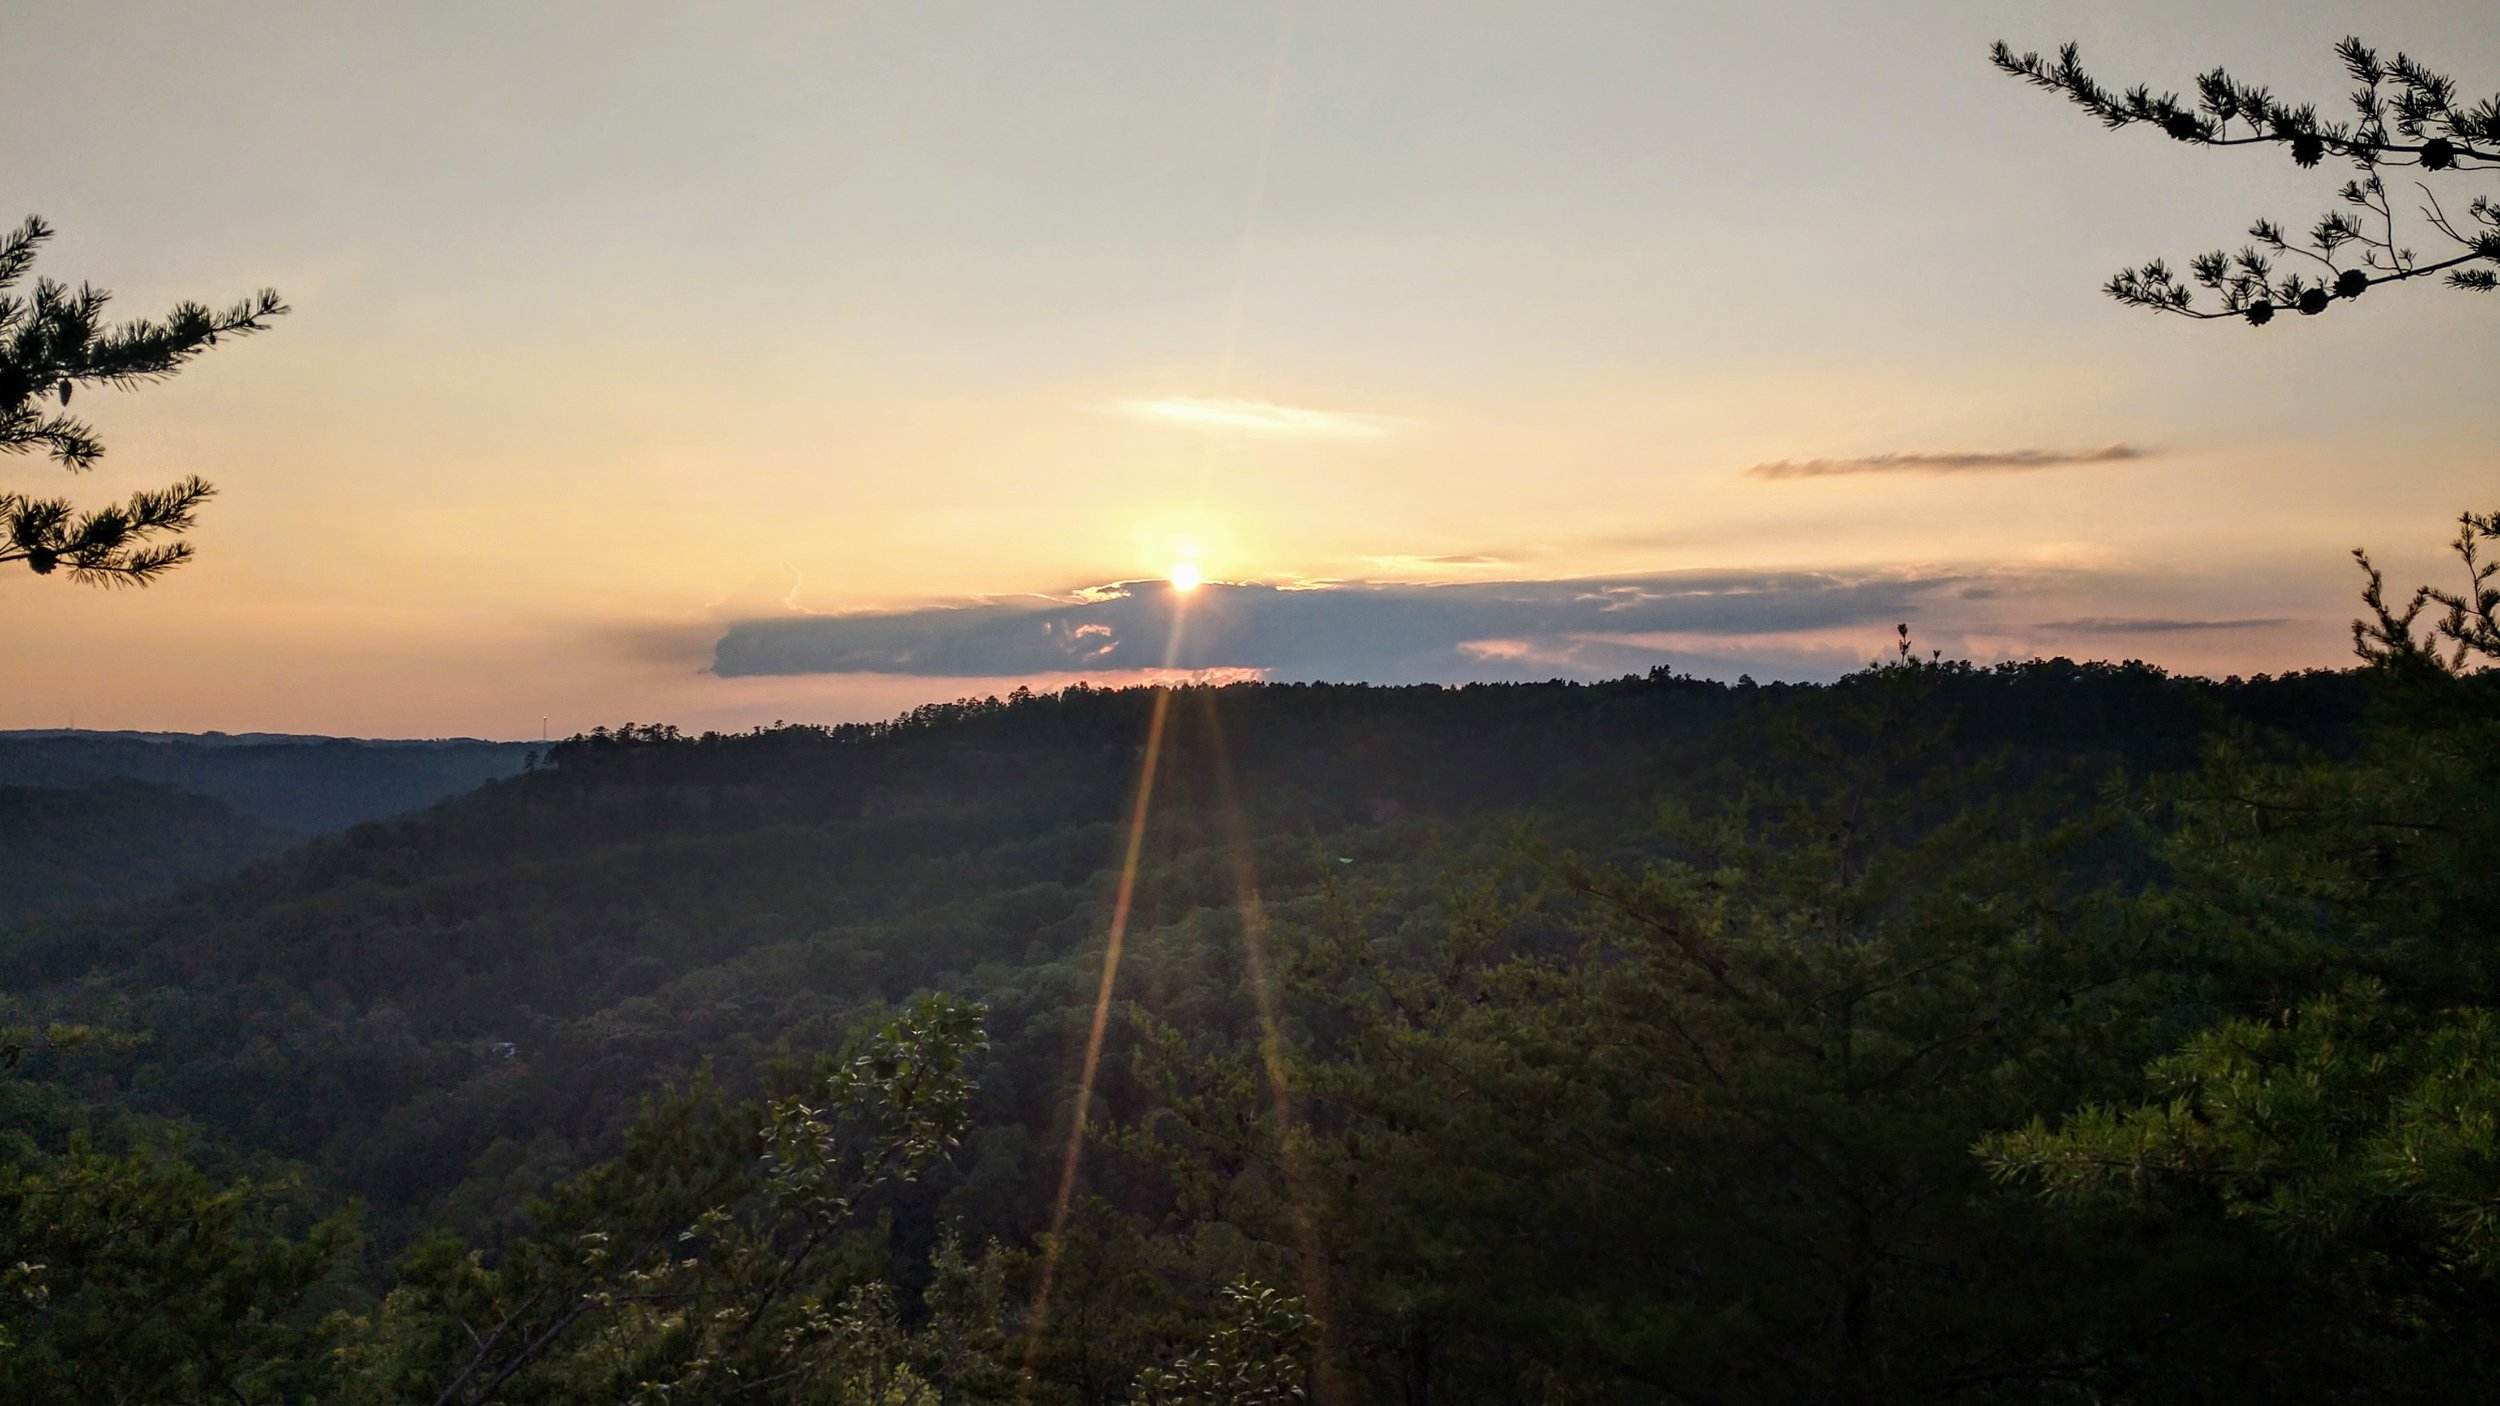 Off the Beaten Path for Sunset - To kickoff the weekend, here's a great little hike to a lightly traveled spot for sunset. It's a gorgeous view with a good chance at solitude to boot!